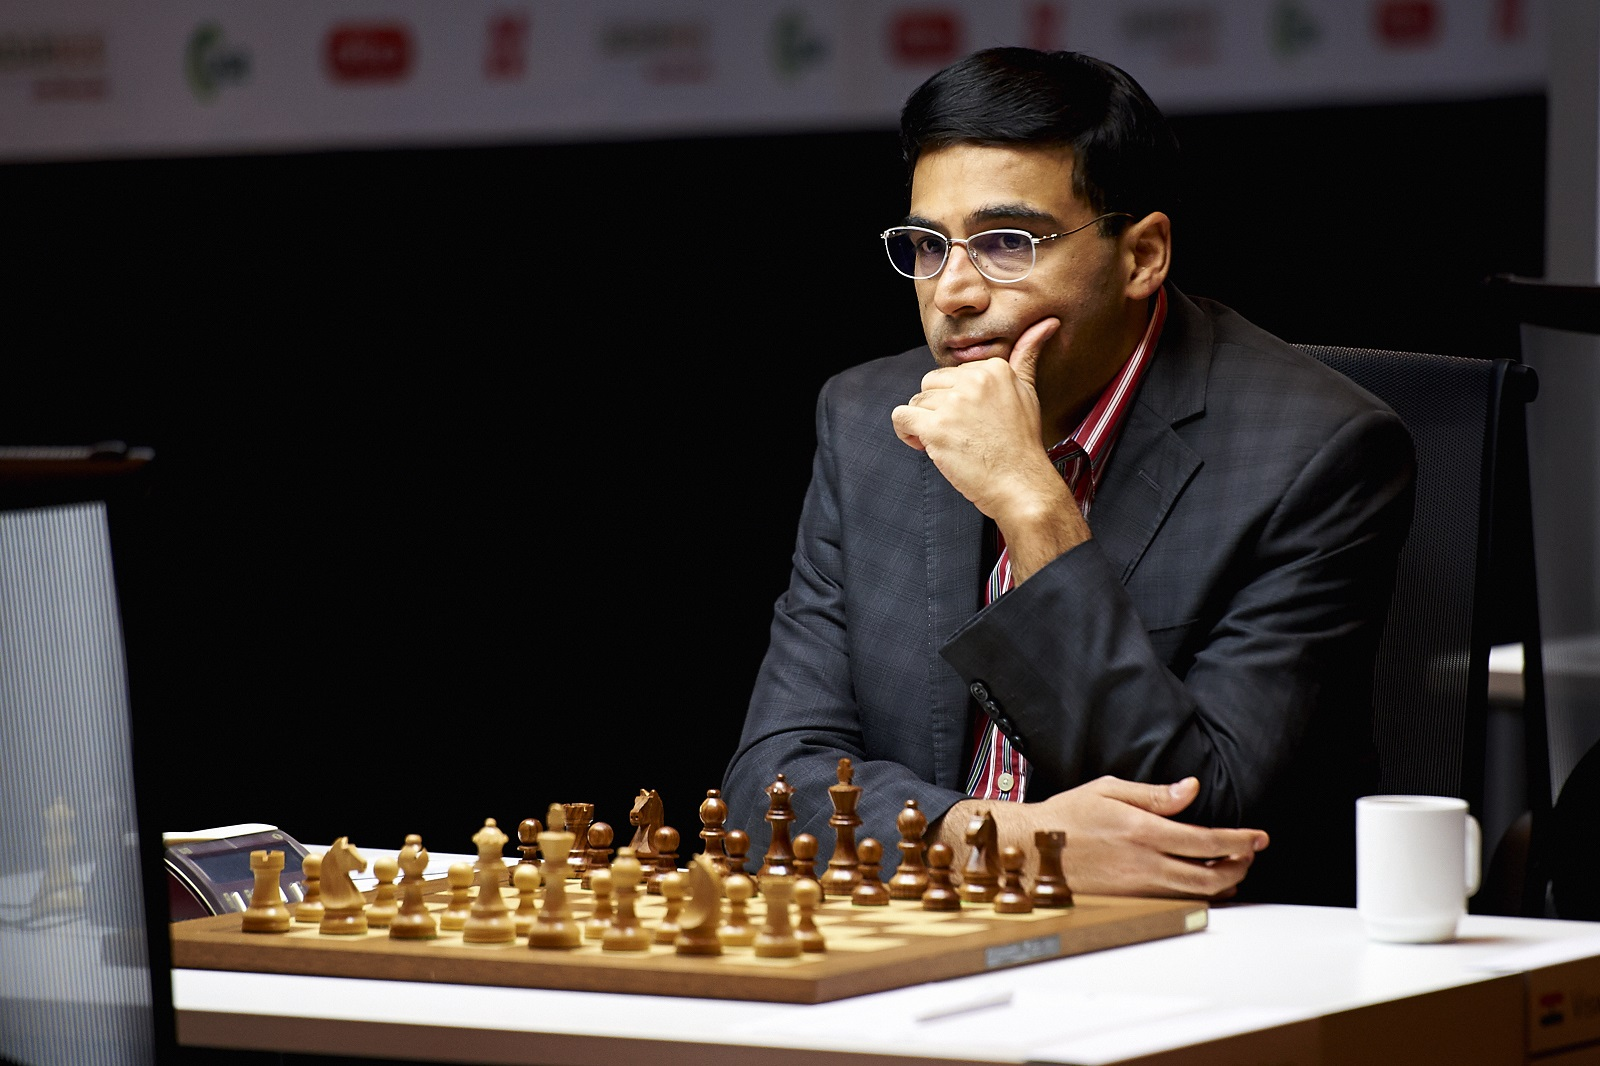 India's first and most popular chess grandmaster just turned 50